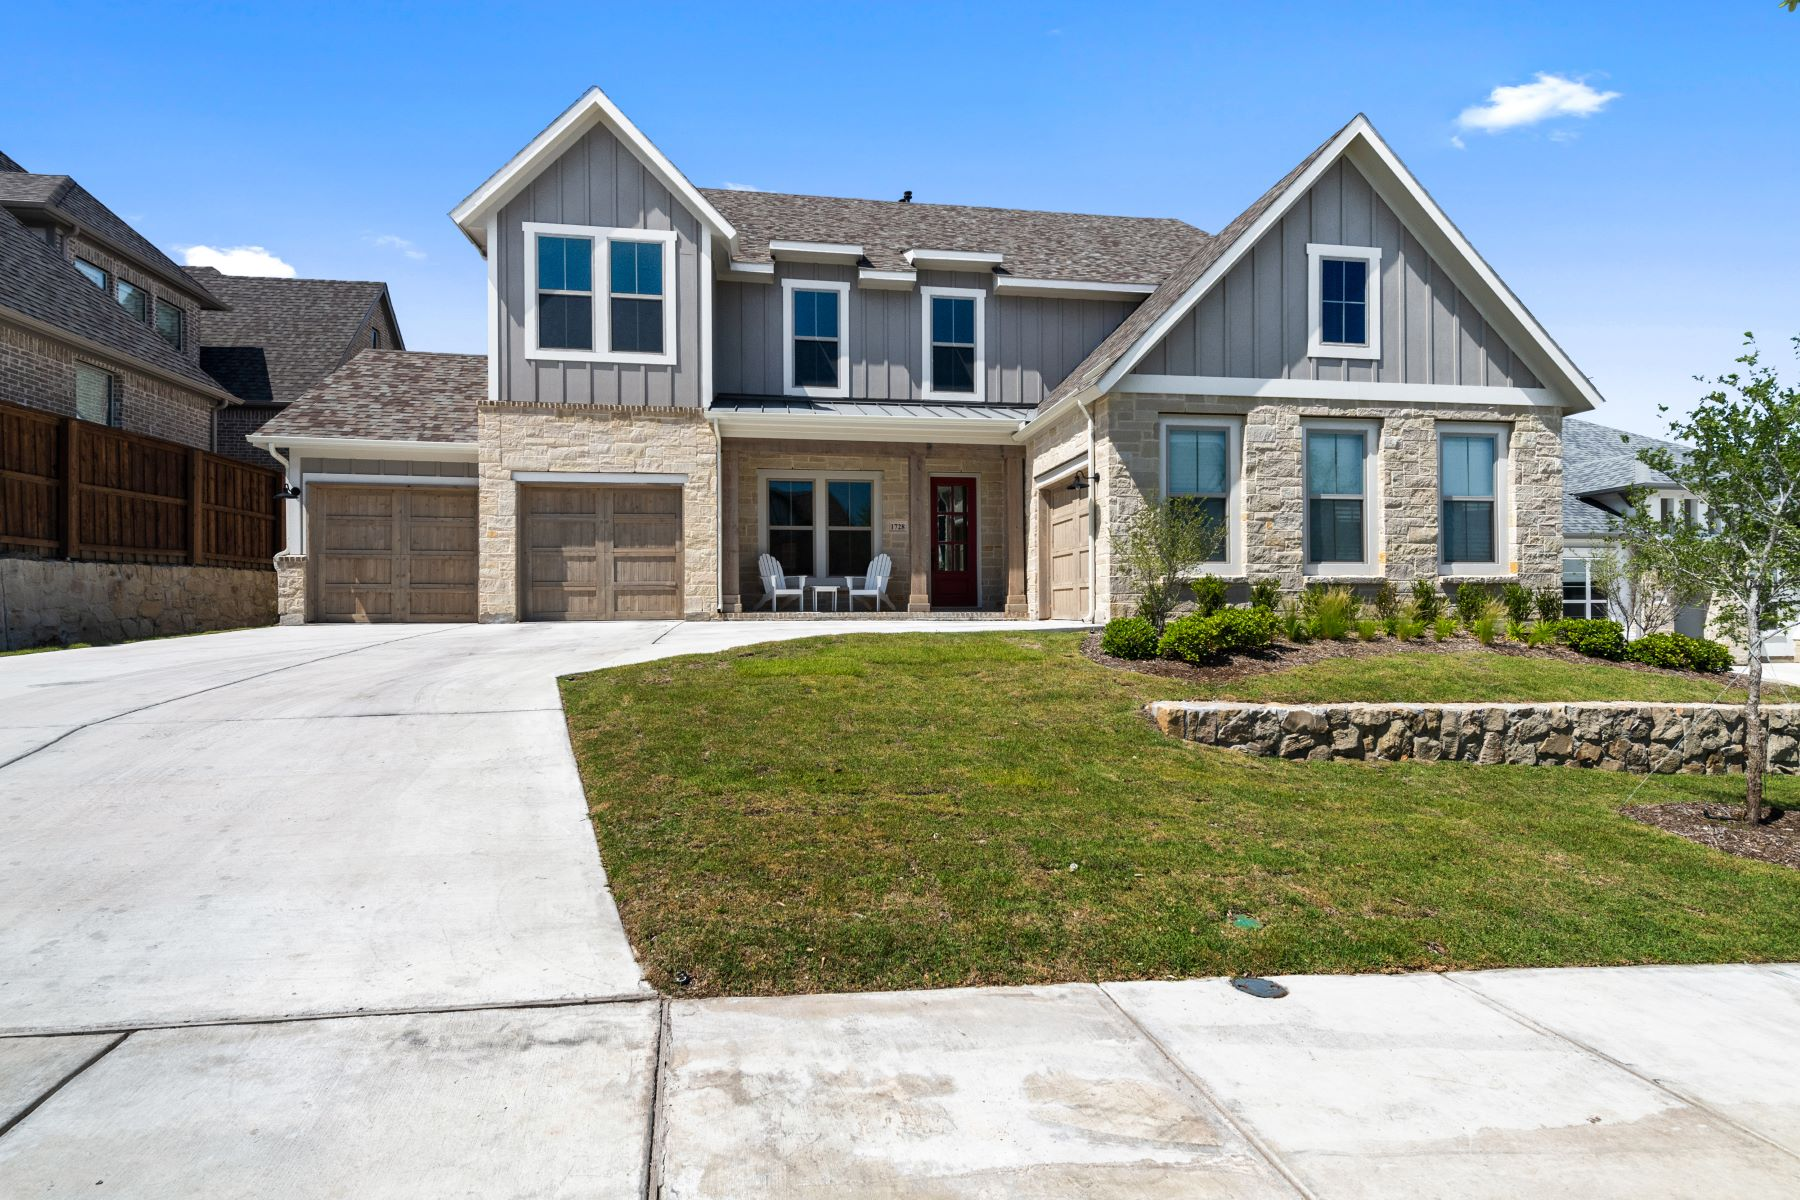 Single Family Homes for Sale at 1728 Crested Ridge Road, Aledo, TX, 76008 1728 Crested Ridge Road Aledo, Texas 76008 United States